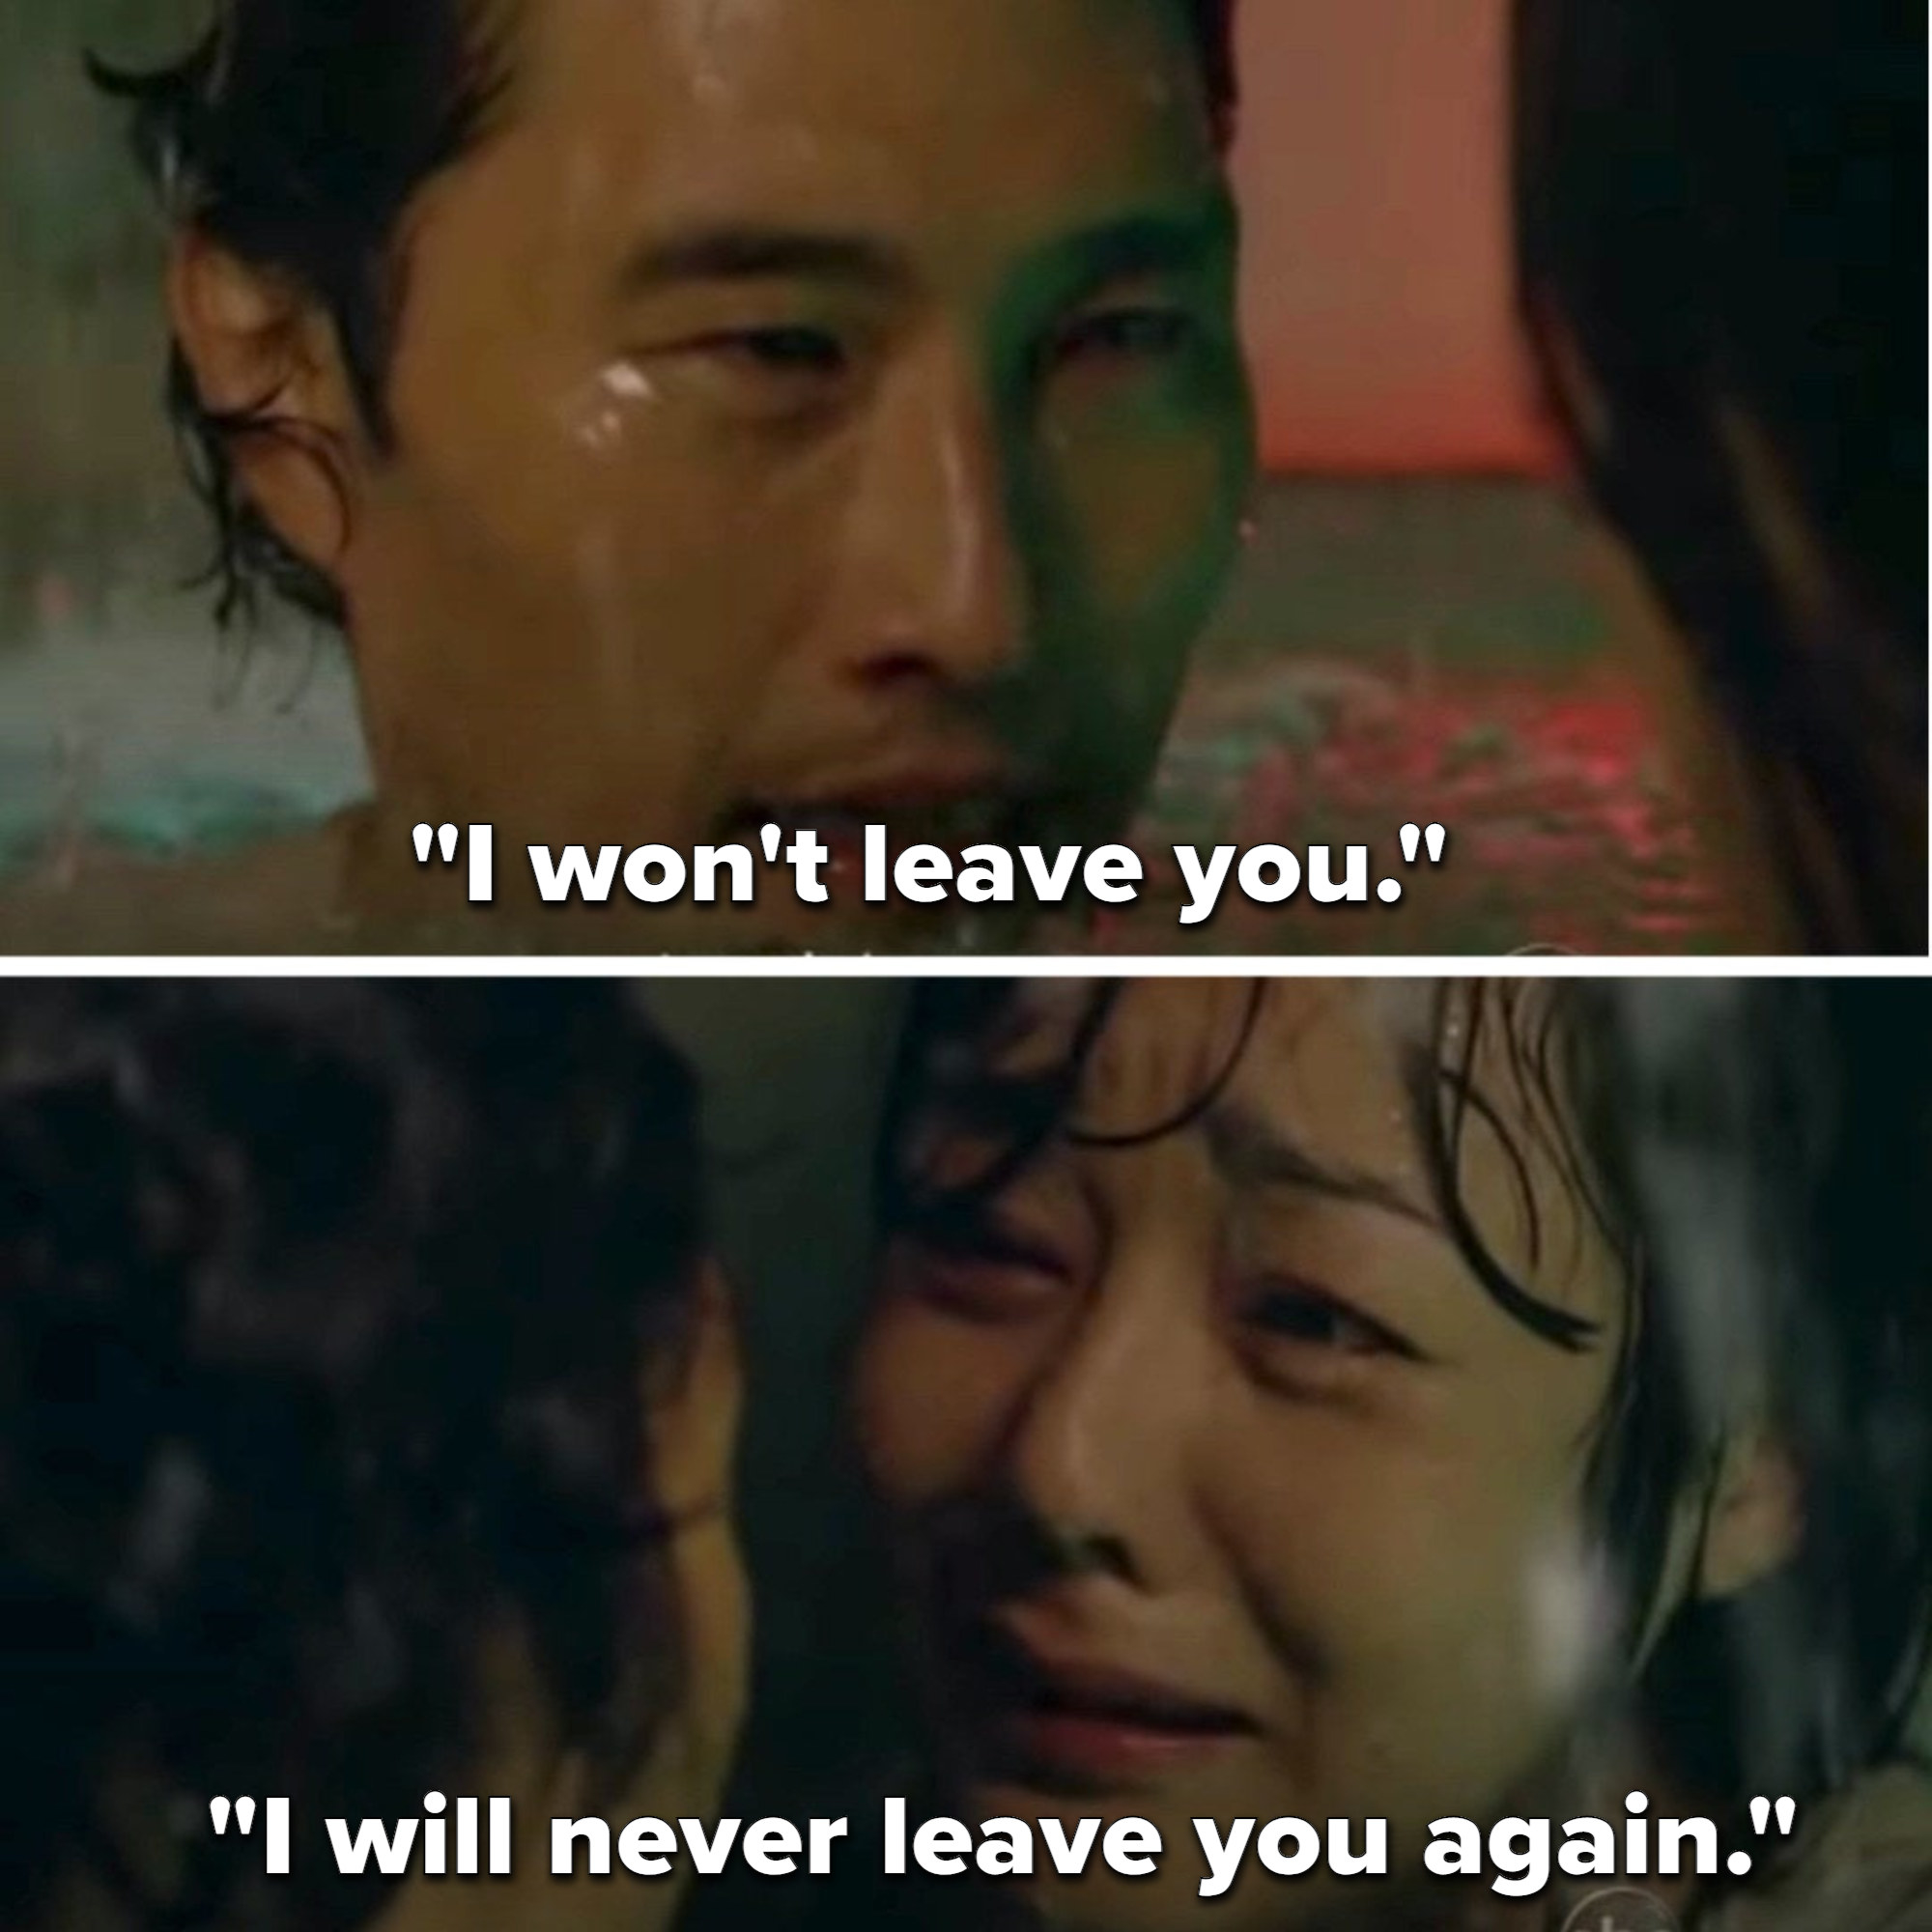 Jin tells Sun he won't leave her ever again as they drown